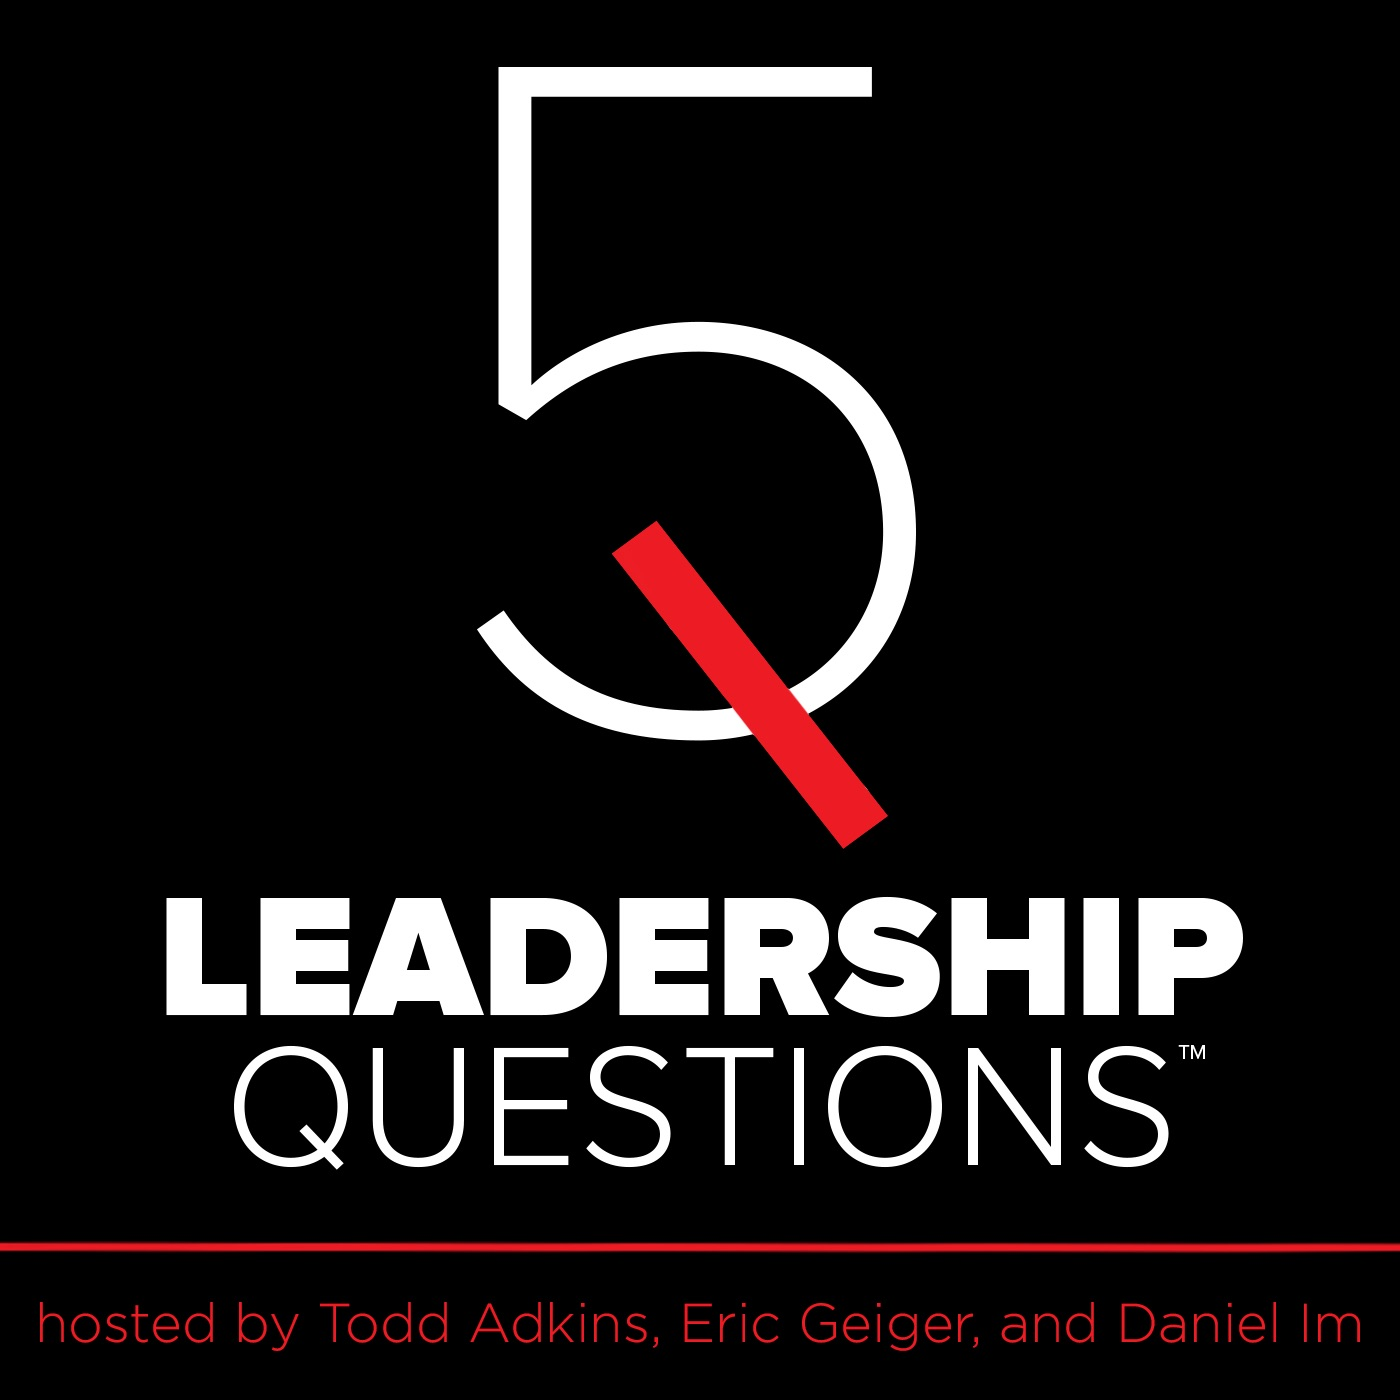 5 Leadership Questions: A leadership podcast featuring interviews with Carey Nieuwhof, Craig Groeschel, Matt Chandler, Jen Wilkin, Levi Lusko, Simon Sinek, and more.